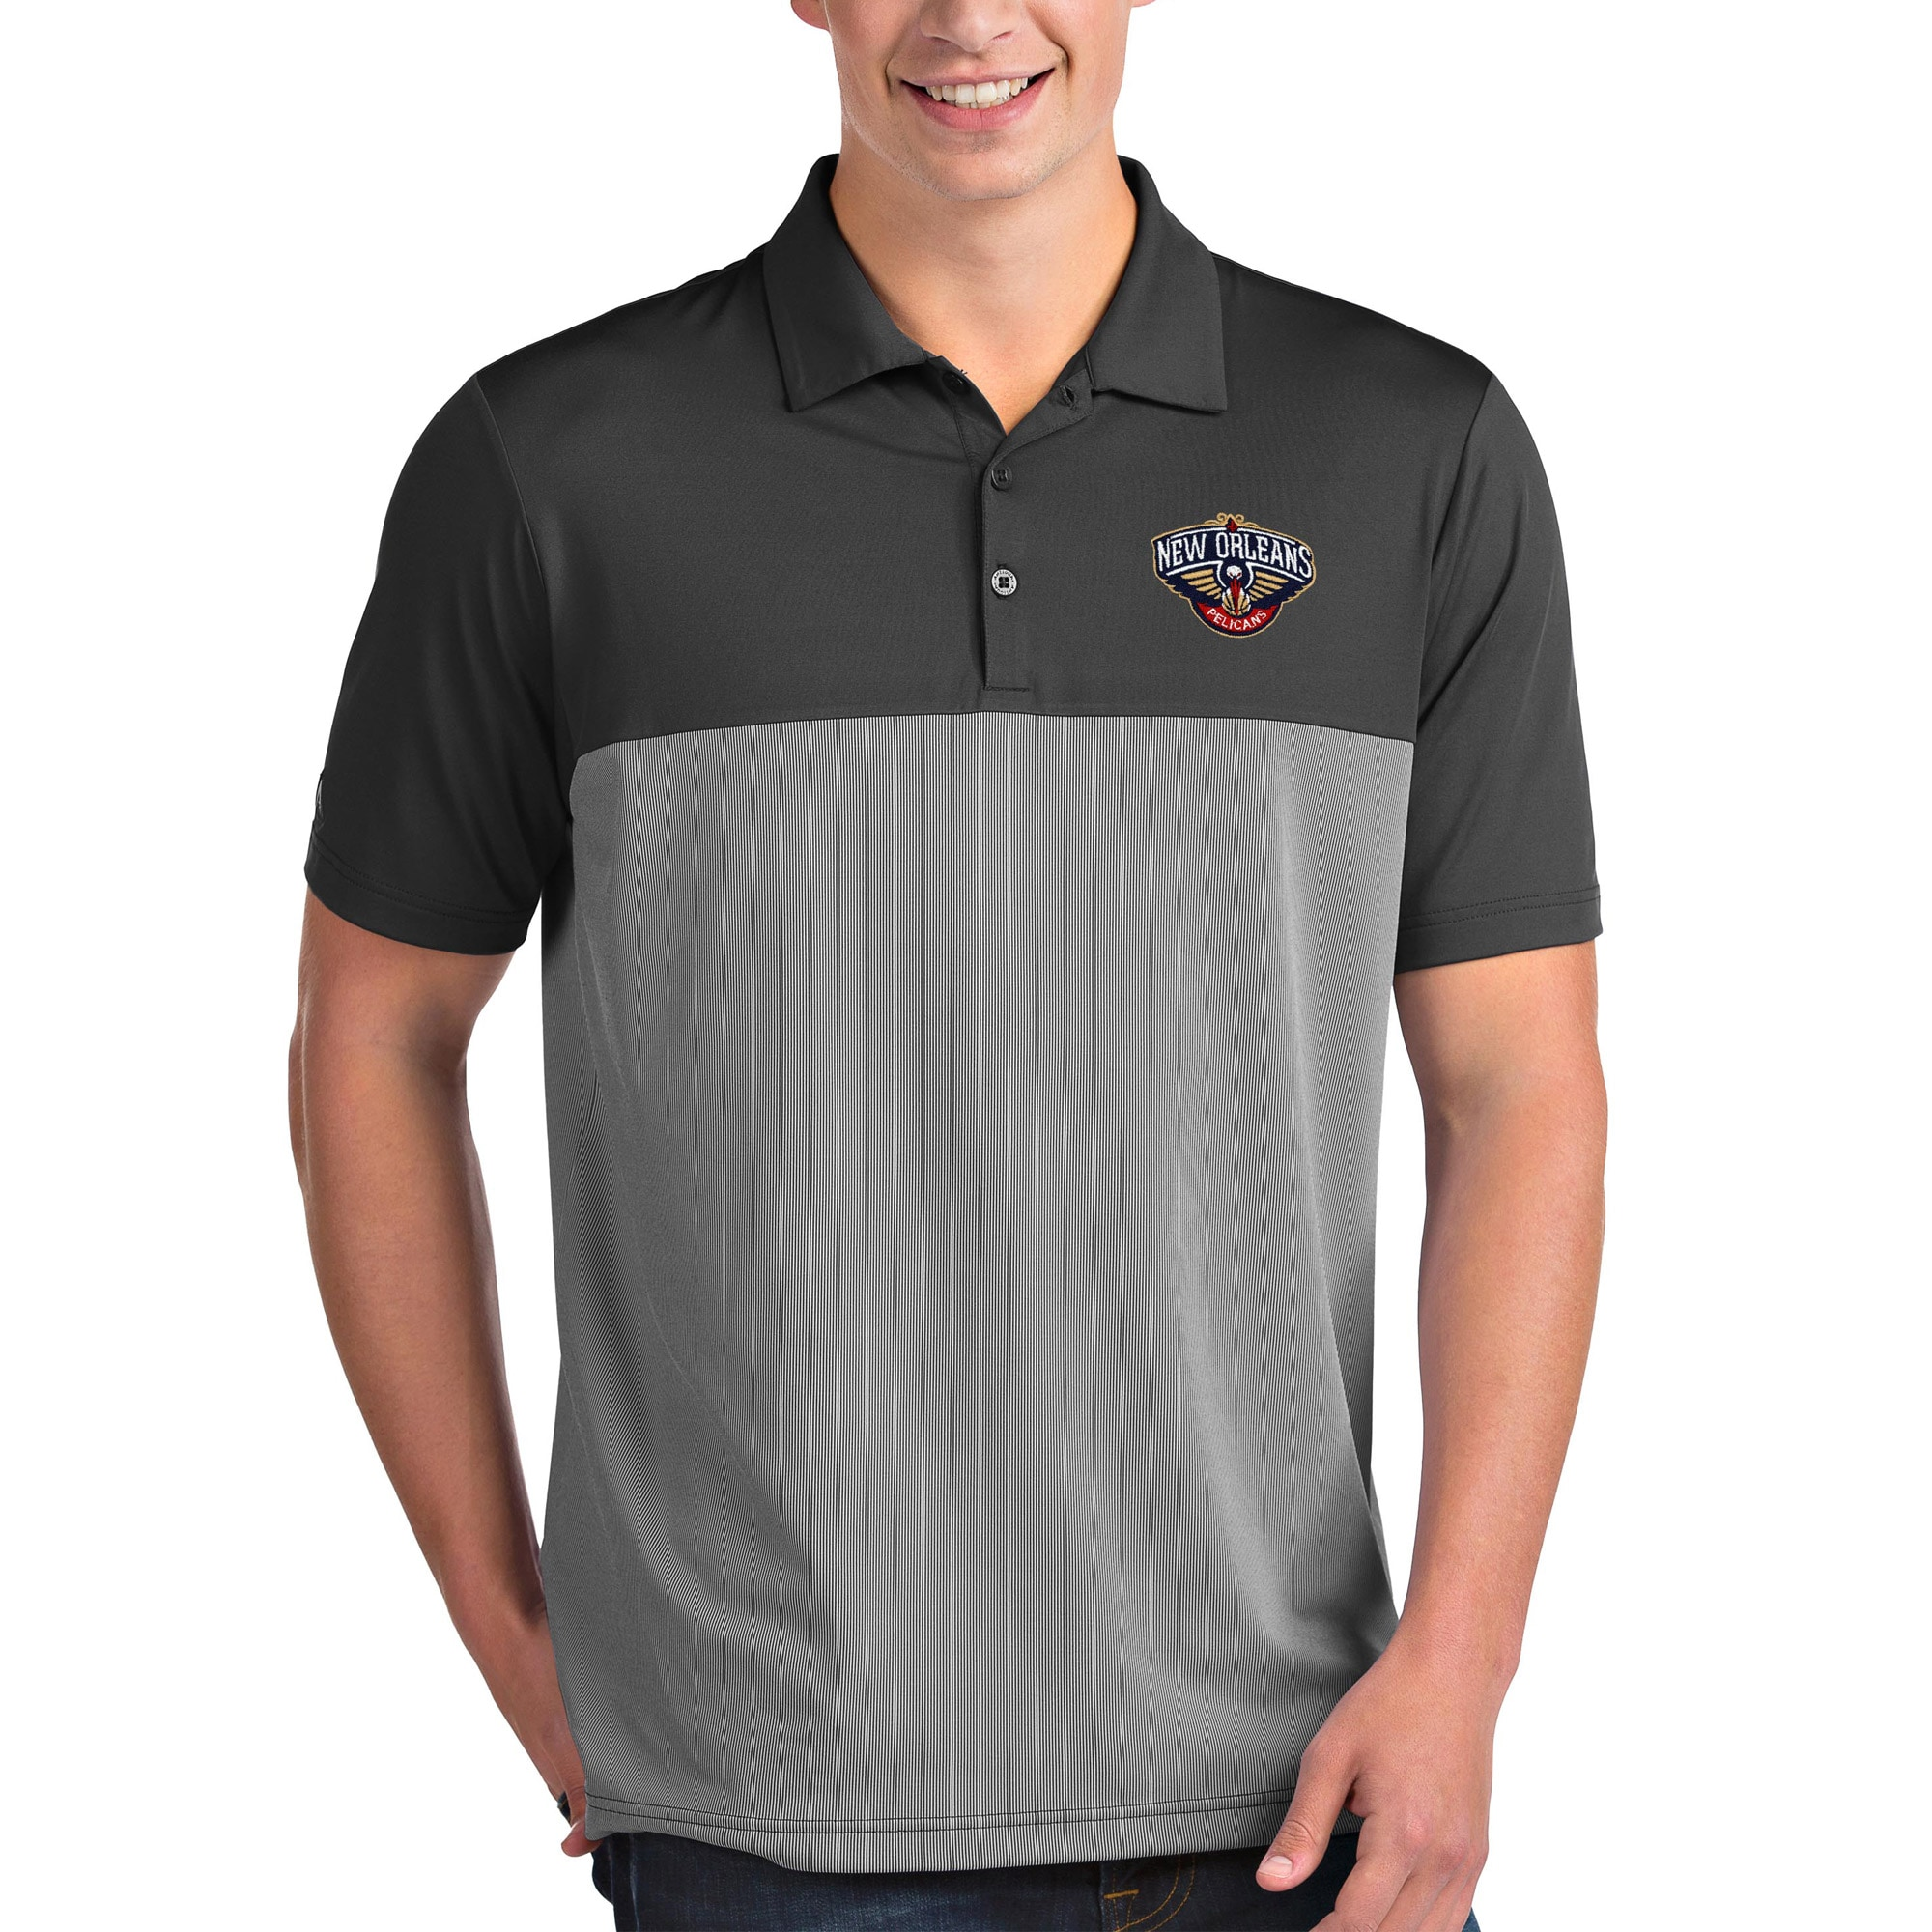 New Orleans Pelicans Antigua Venture Polo - Charcoal/White